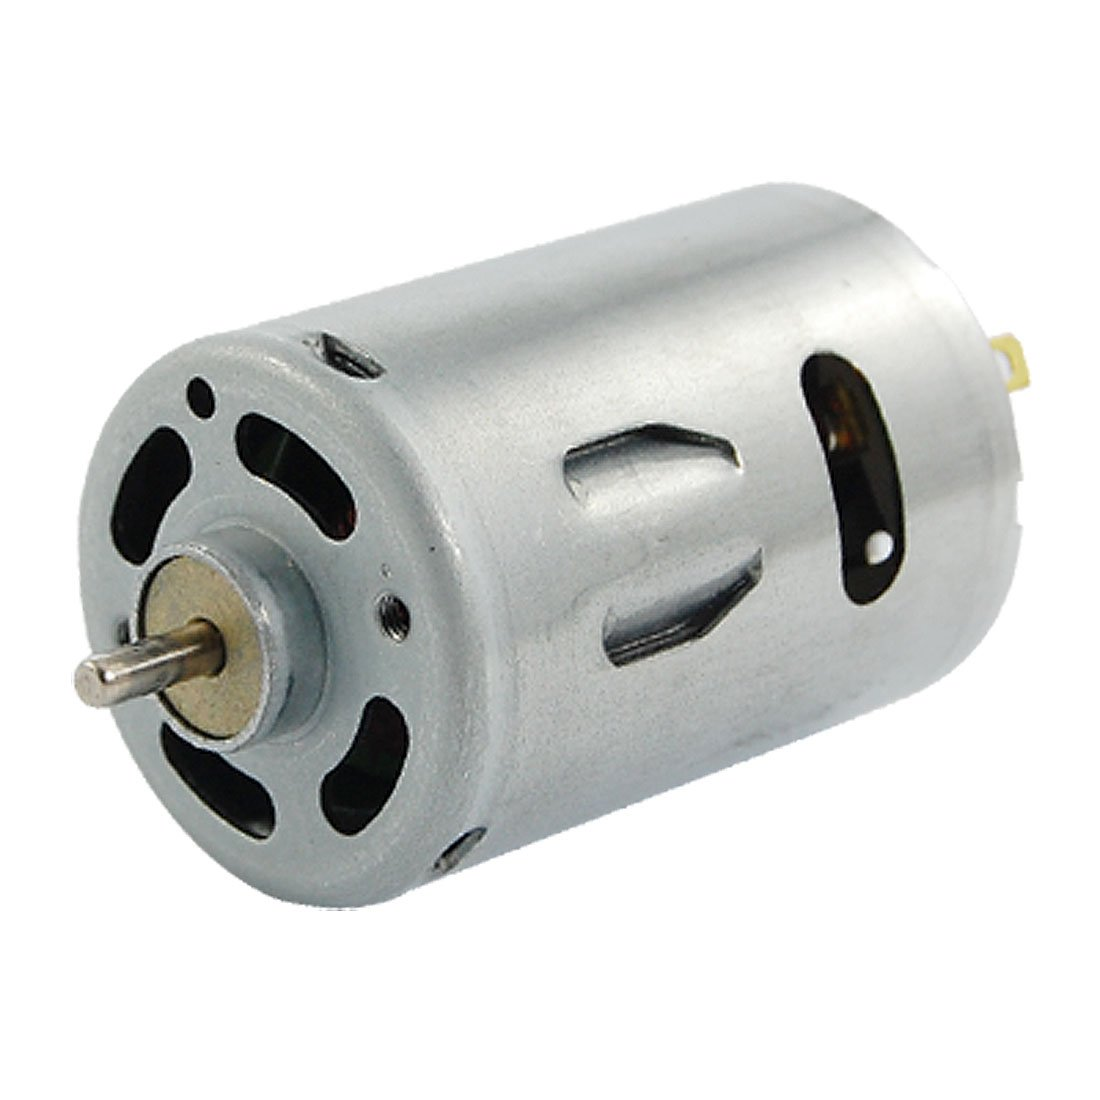 LIXF HOT 12V 2A 20000RPM Powerful DC Mini Motor for Electric Cars DIY Project syb 170 mini breadboard for diy project red